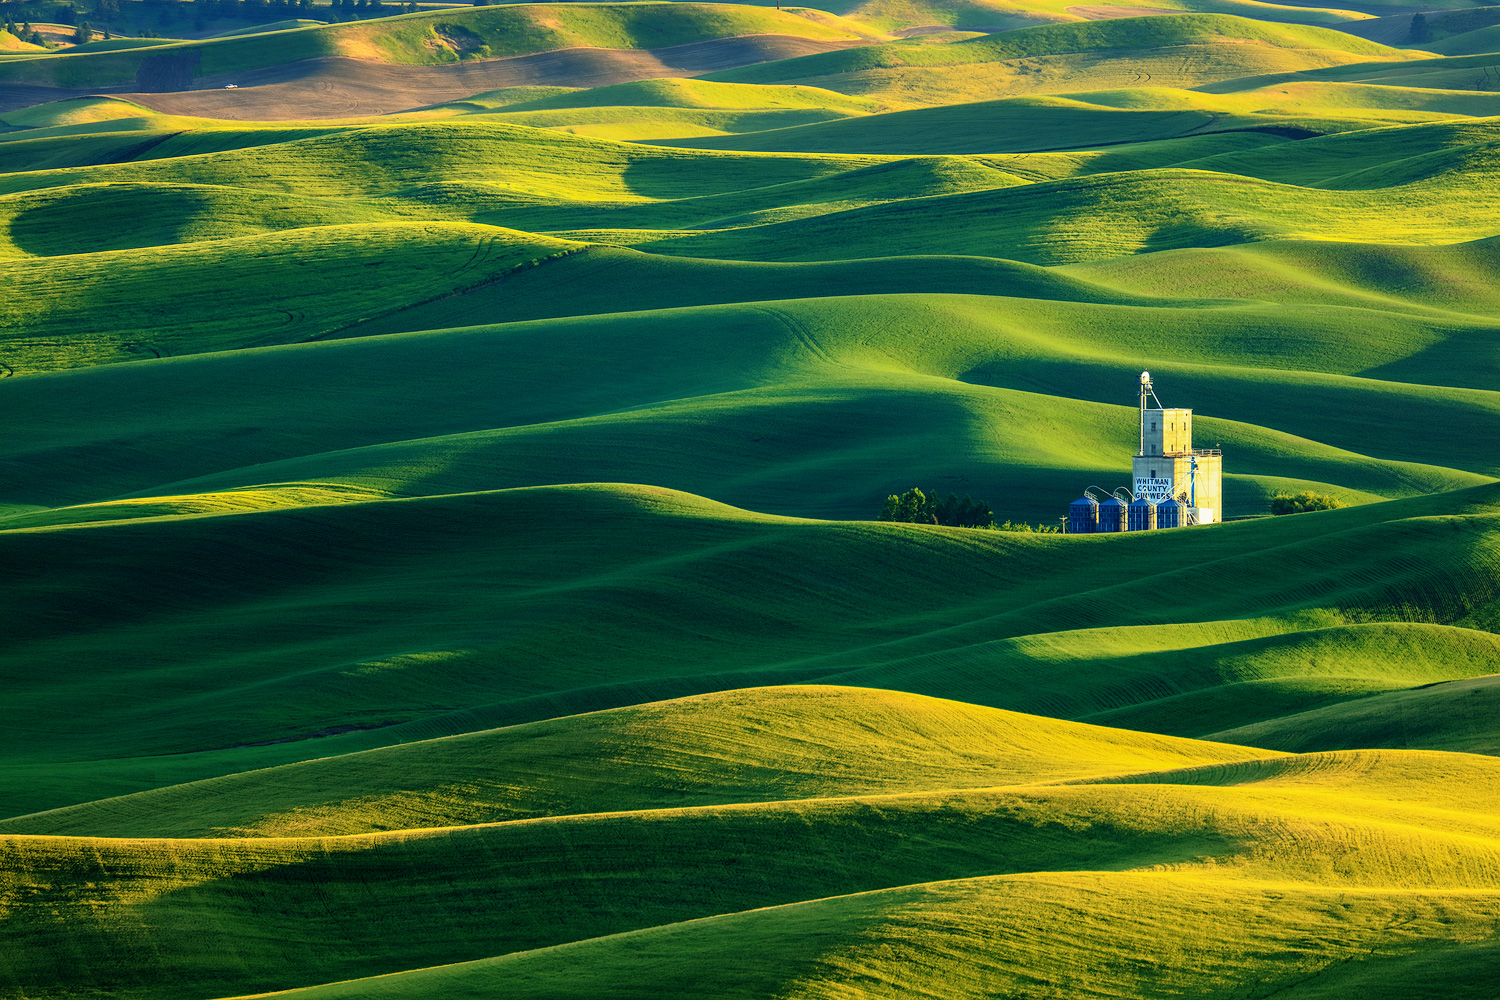 """Rolling hills, rustic barns, some more than 100 years old, along with picturesque farm towns and jaw dropping vistas are all part of what makes Palouse the """"Tuscany of the Northwest""""."""